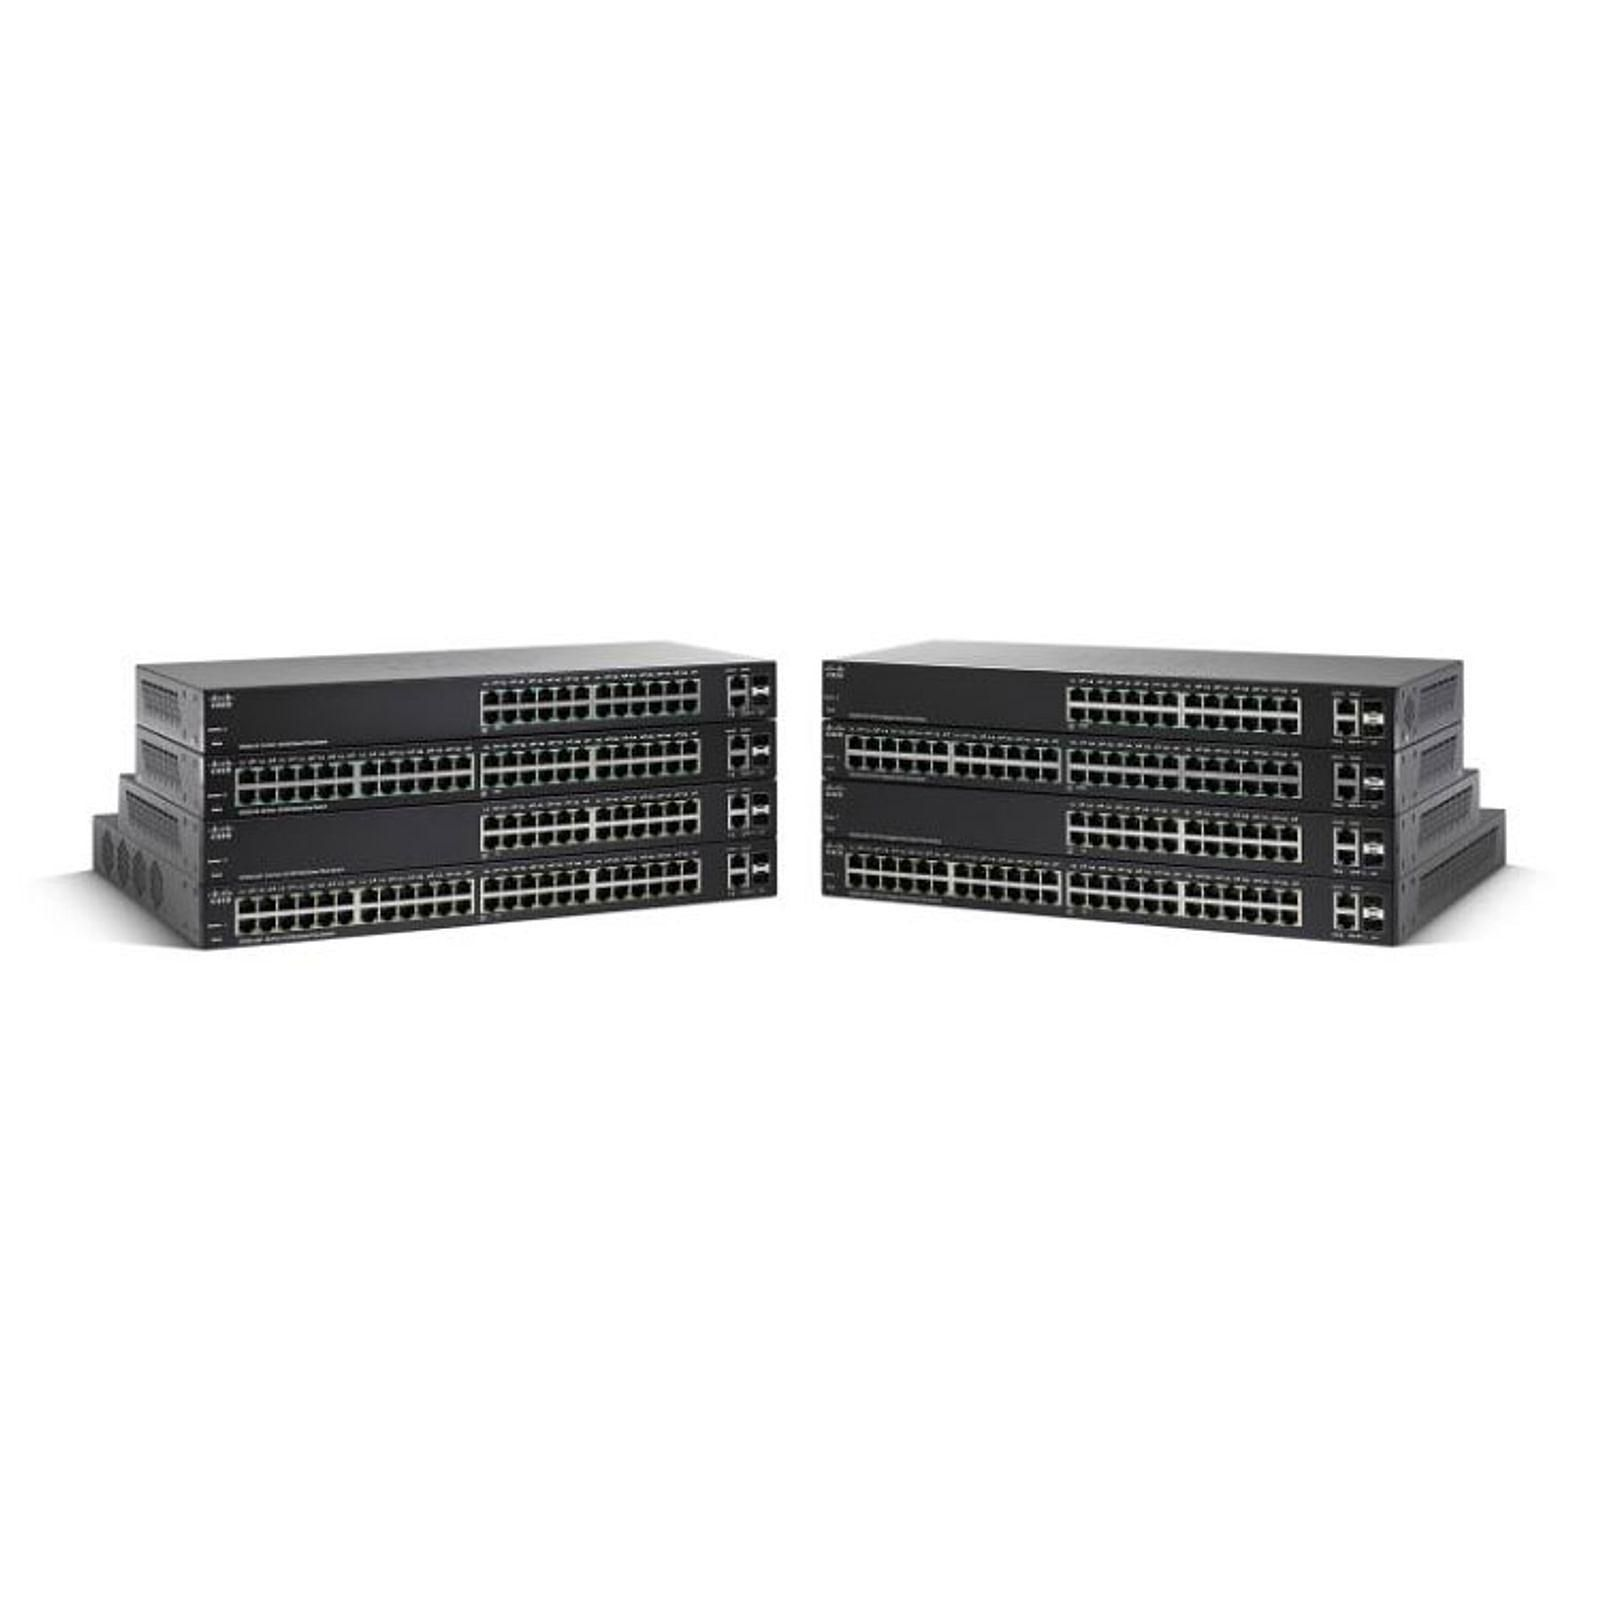 Cisco SG220-50P Switch Small Business Smart Plus Gigabit 48 ports PoE + 2 ports combo SFP